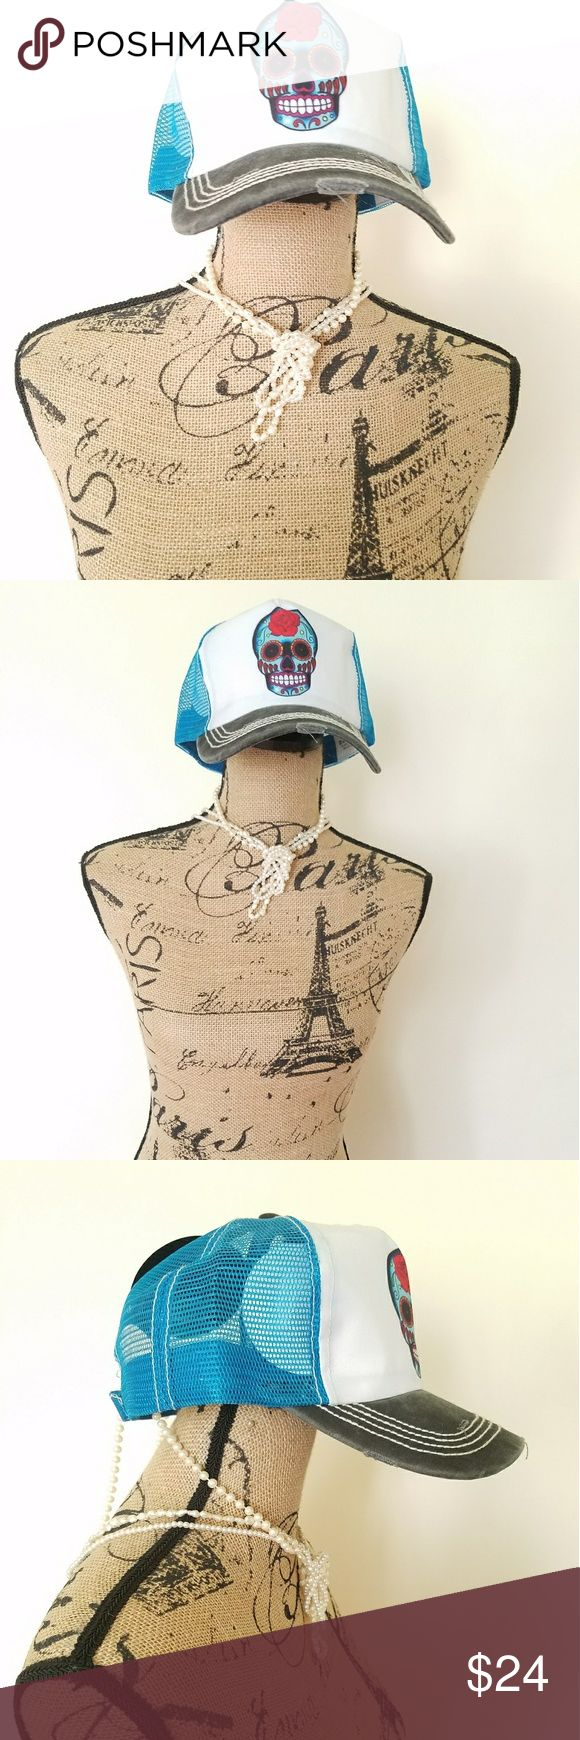 """Sugar Skull Candy Skull Mesh Turquiose Trucker Hat New Sugar Skull Candy Skull Mesh Turquiose Trucker Baseball Cap Hat Adjustable  - Vintage Torn and Stitched Décor - Brim with Vintage Torn and Stitched Décor - Printed Turquoise Décor on Velcro Size Adjuster - Size Adjustable - Brim Length: 2.75"""" Accessories Hats"""